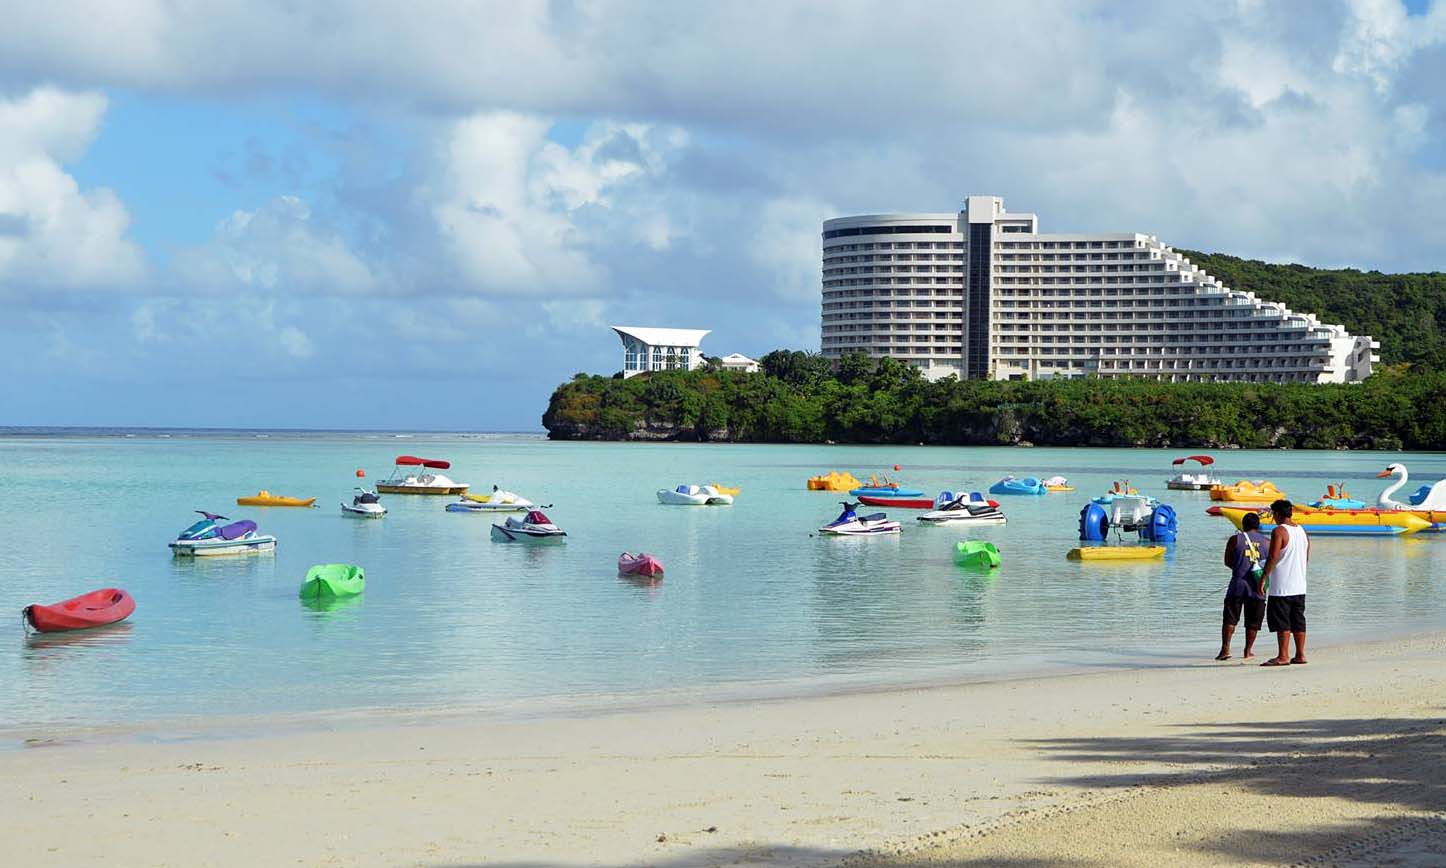 Beach and hotel on Guam